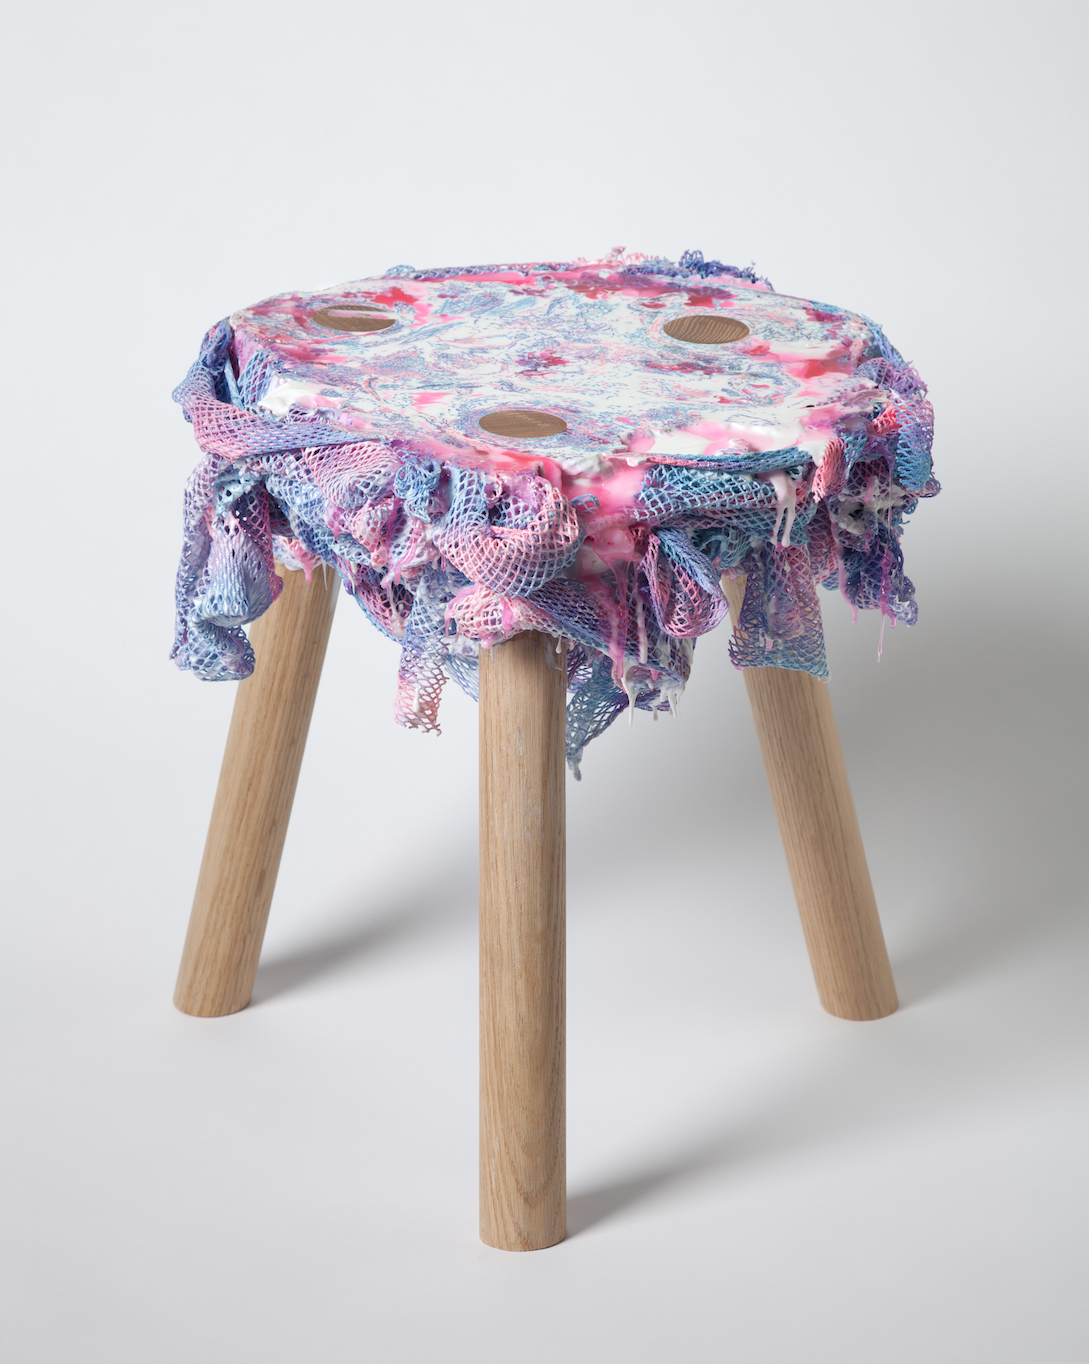 Network (stool), 2011 Chen Chen and Kai Williams.Oak, fabric, urethane resin Photo courtesy of the artists